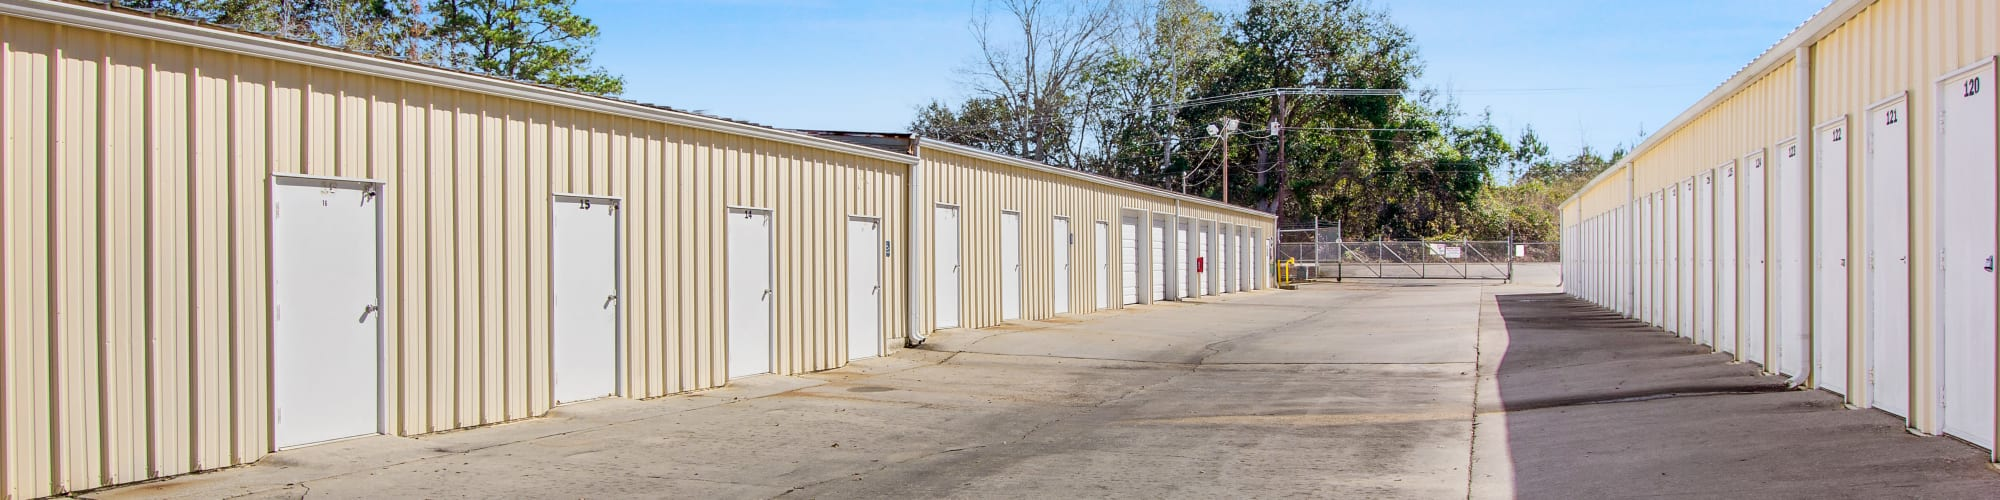 Contact Global Self Storage in Summerville, South Carolina